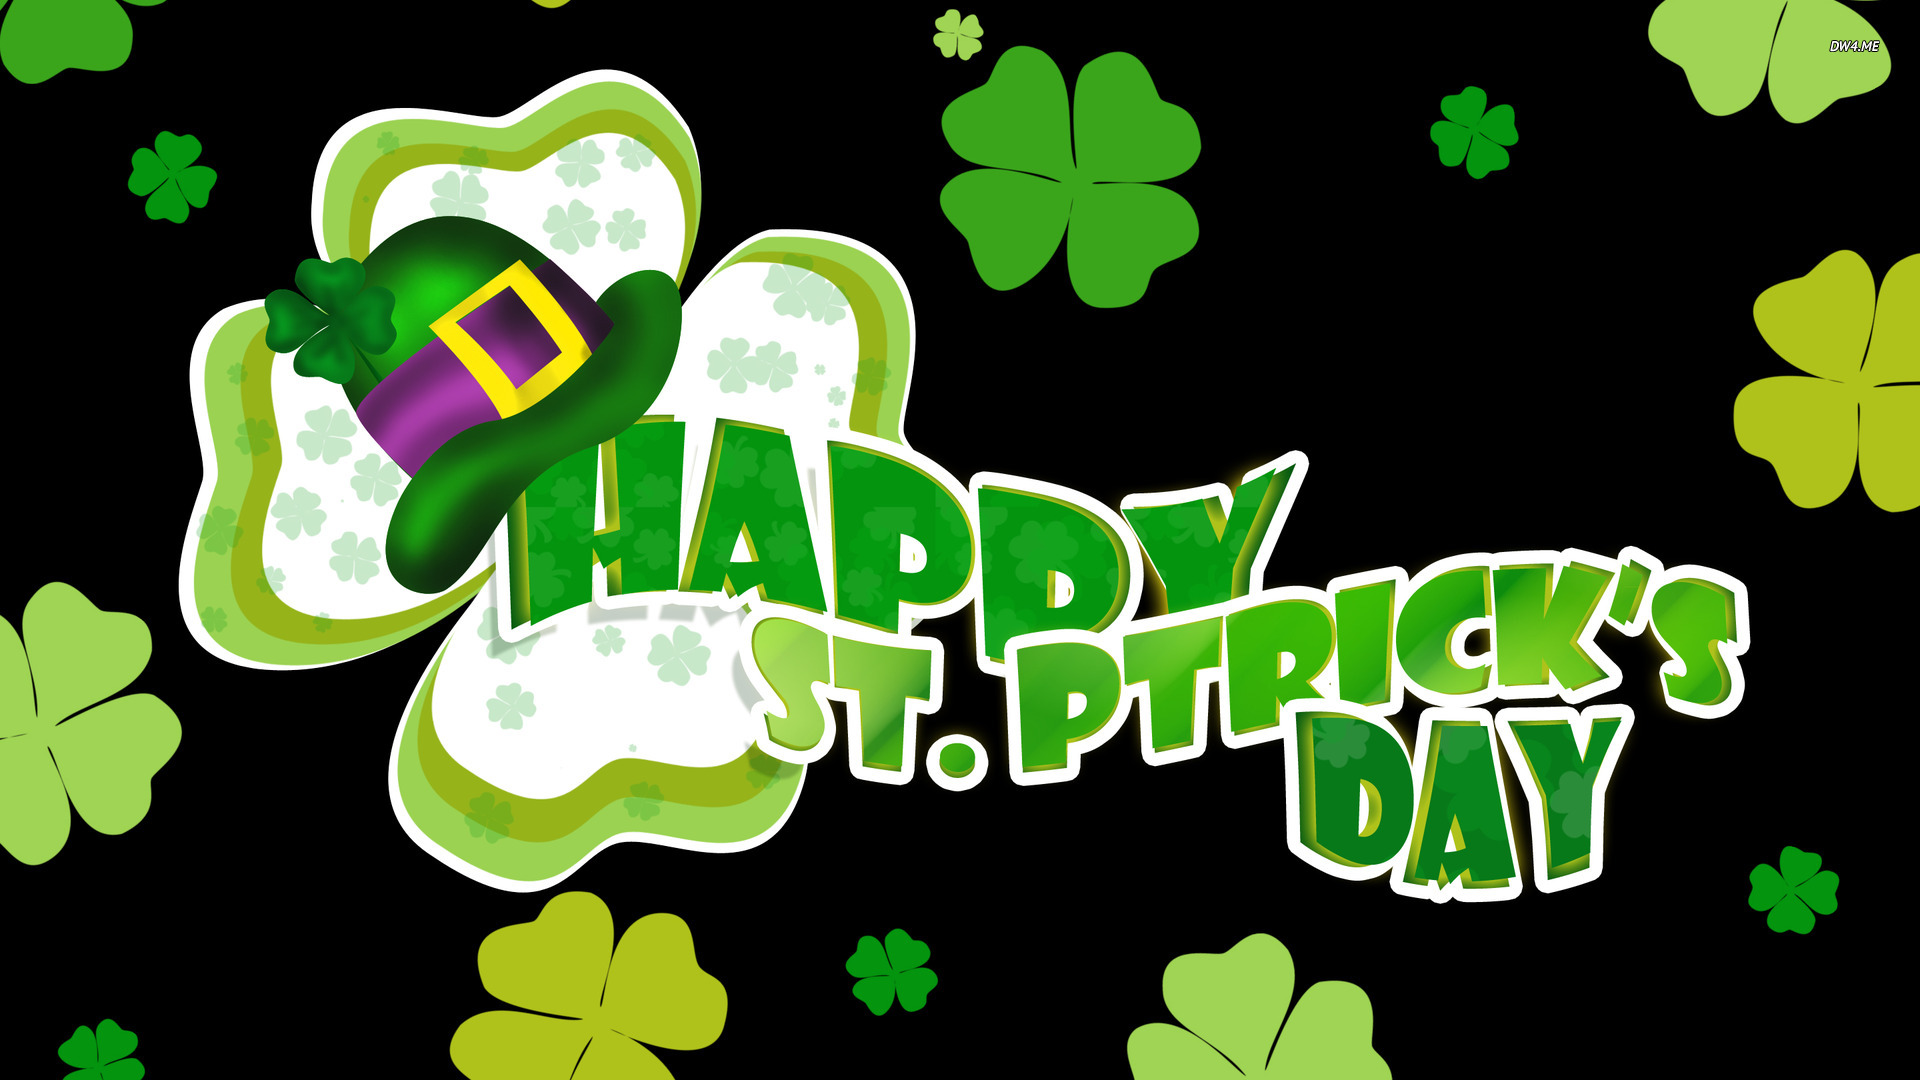 Happy St Patricks Day wallpaper   Holiday wallpapers   1198 1920x1080